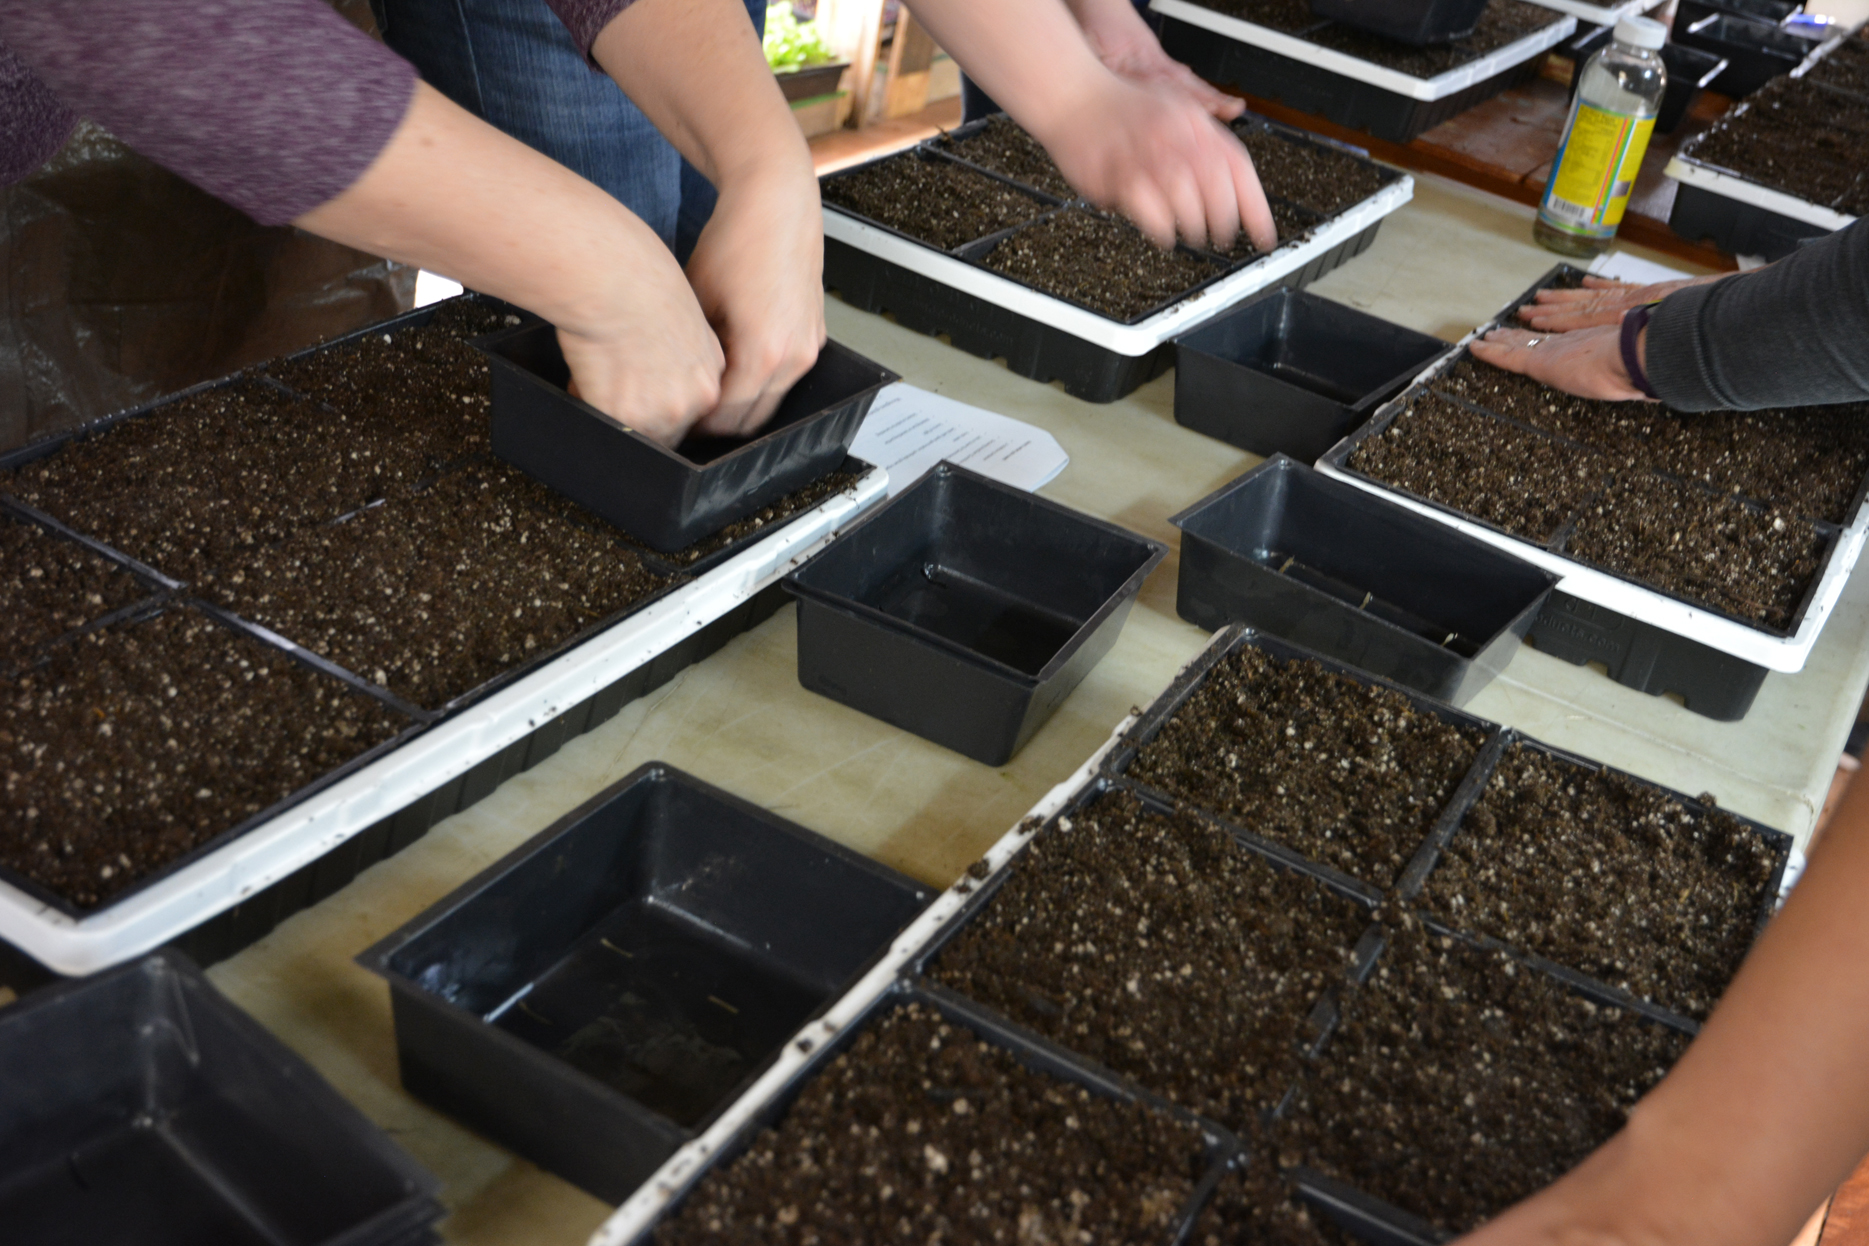 Growing Microgreens - Saturday May 12th 2 classes1:30pm & 3:30pm